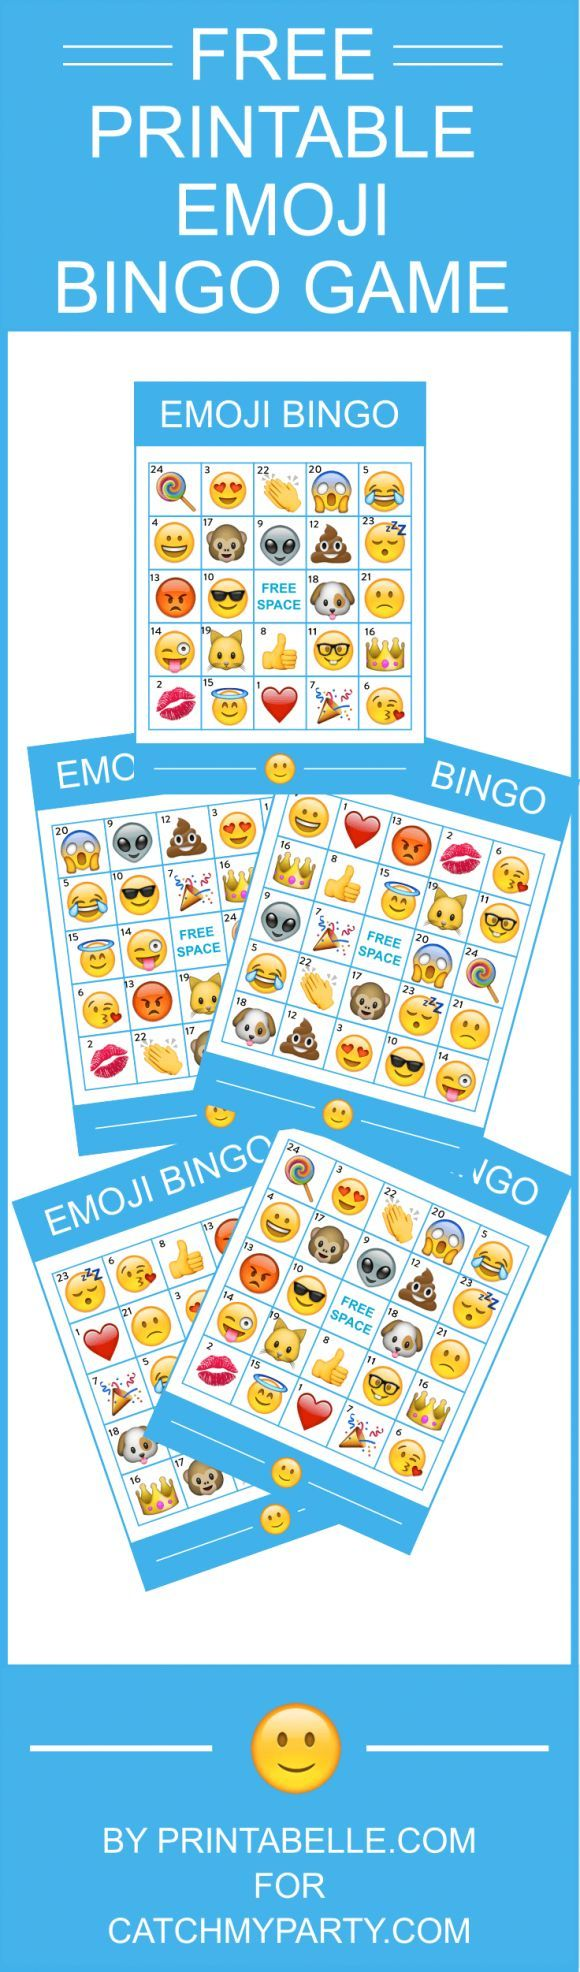 Free Printable Emoji Bingo Game - comes with 8 bingo cards and instructions! This is the perfect birthday party activity!